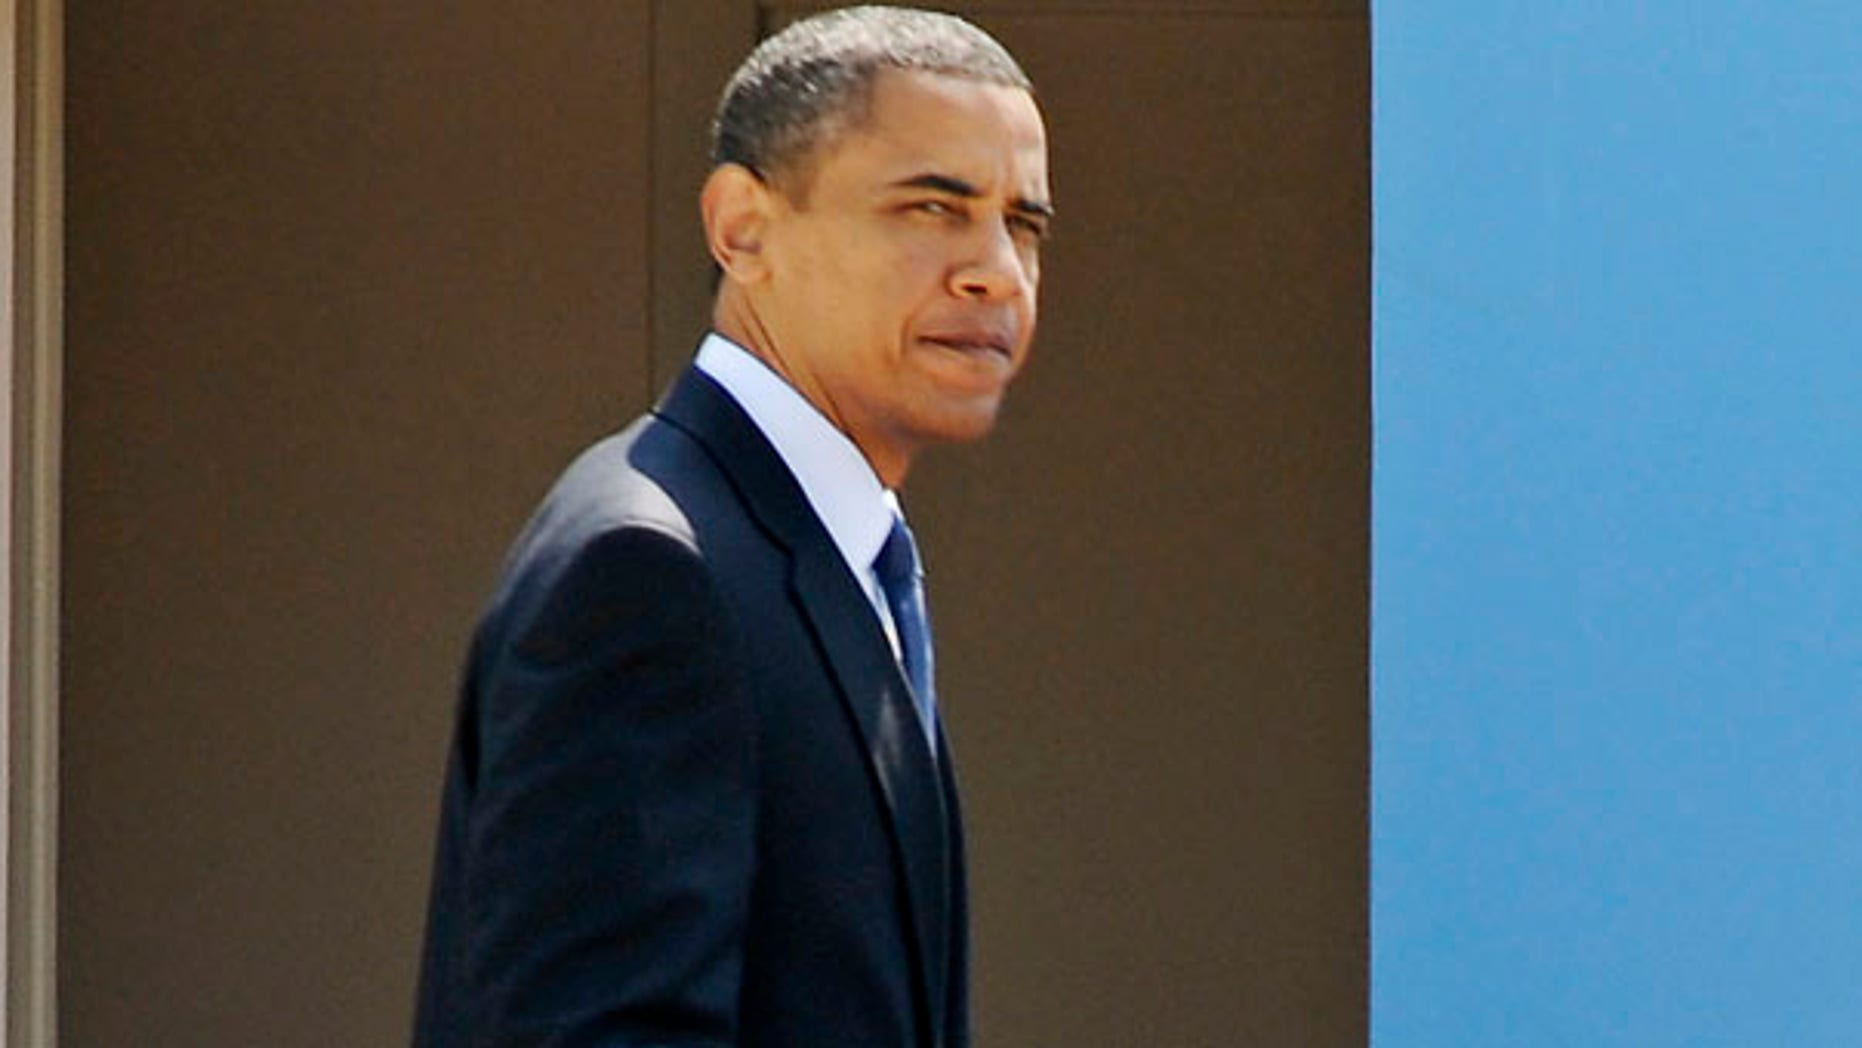 July 15: President Obama's job performance rating has dropped overall and hit a new low among Democrats.